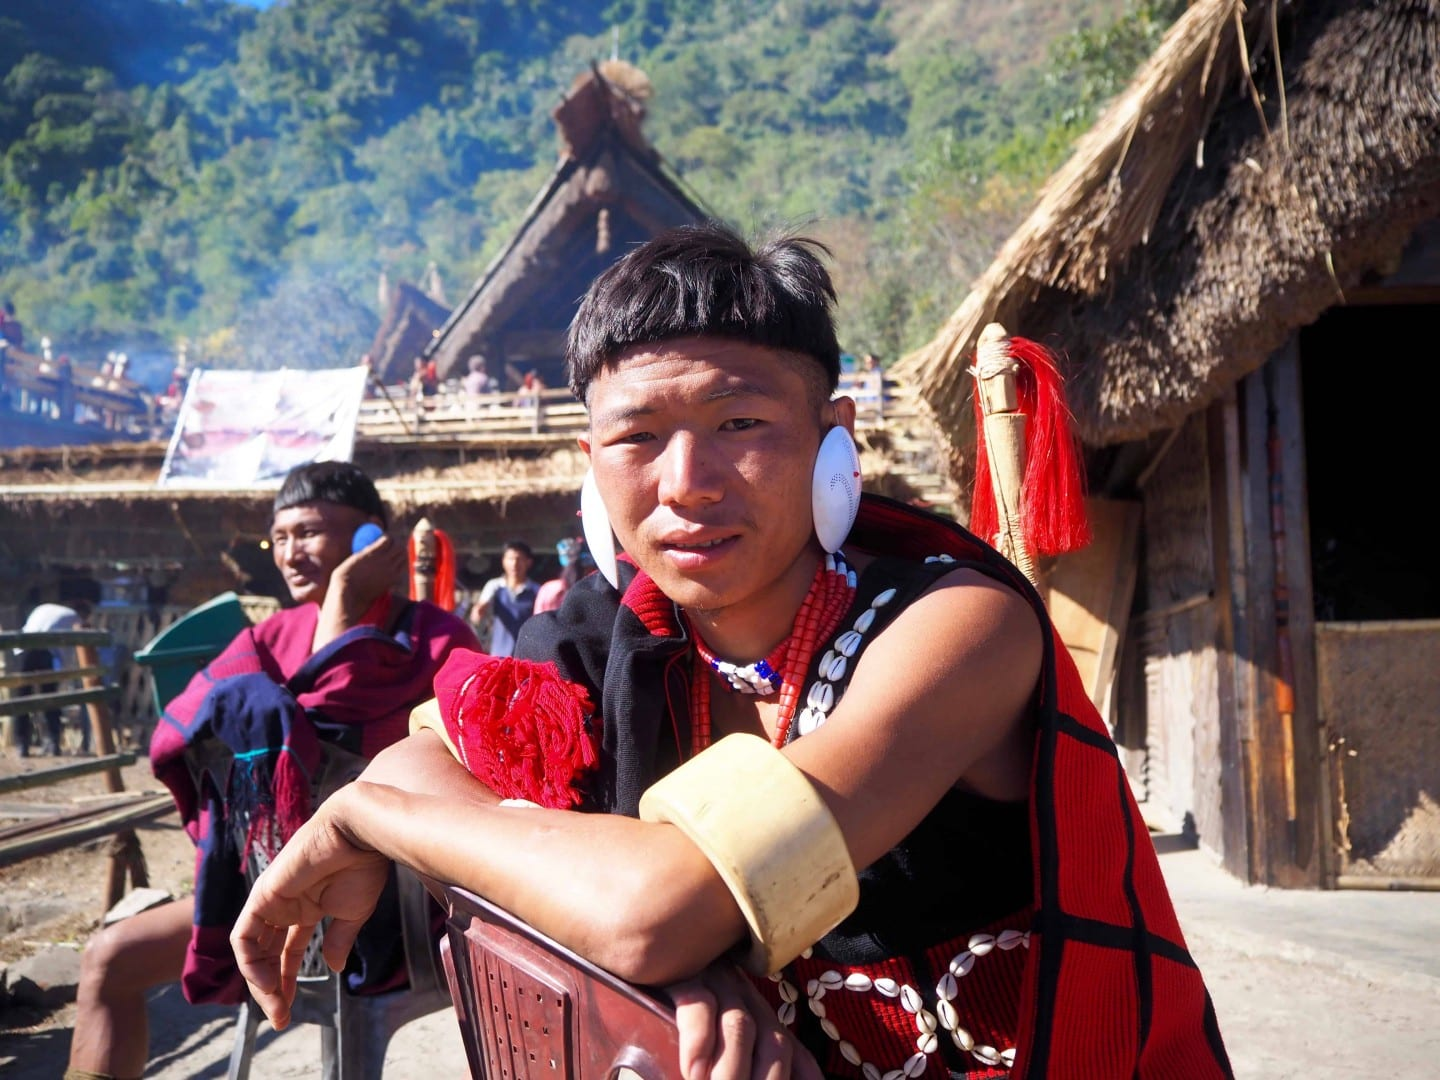 photographers guide hornbill festival